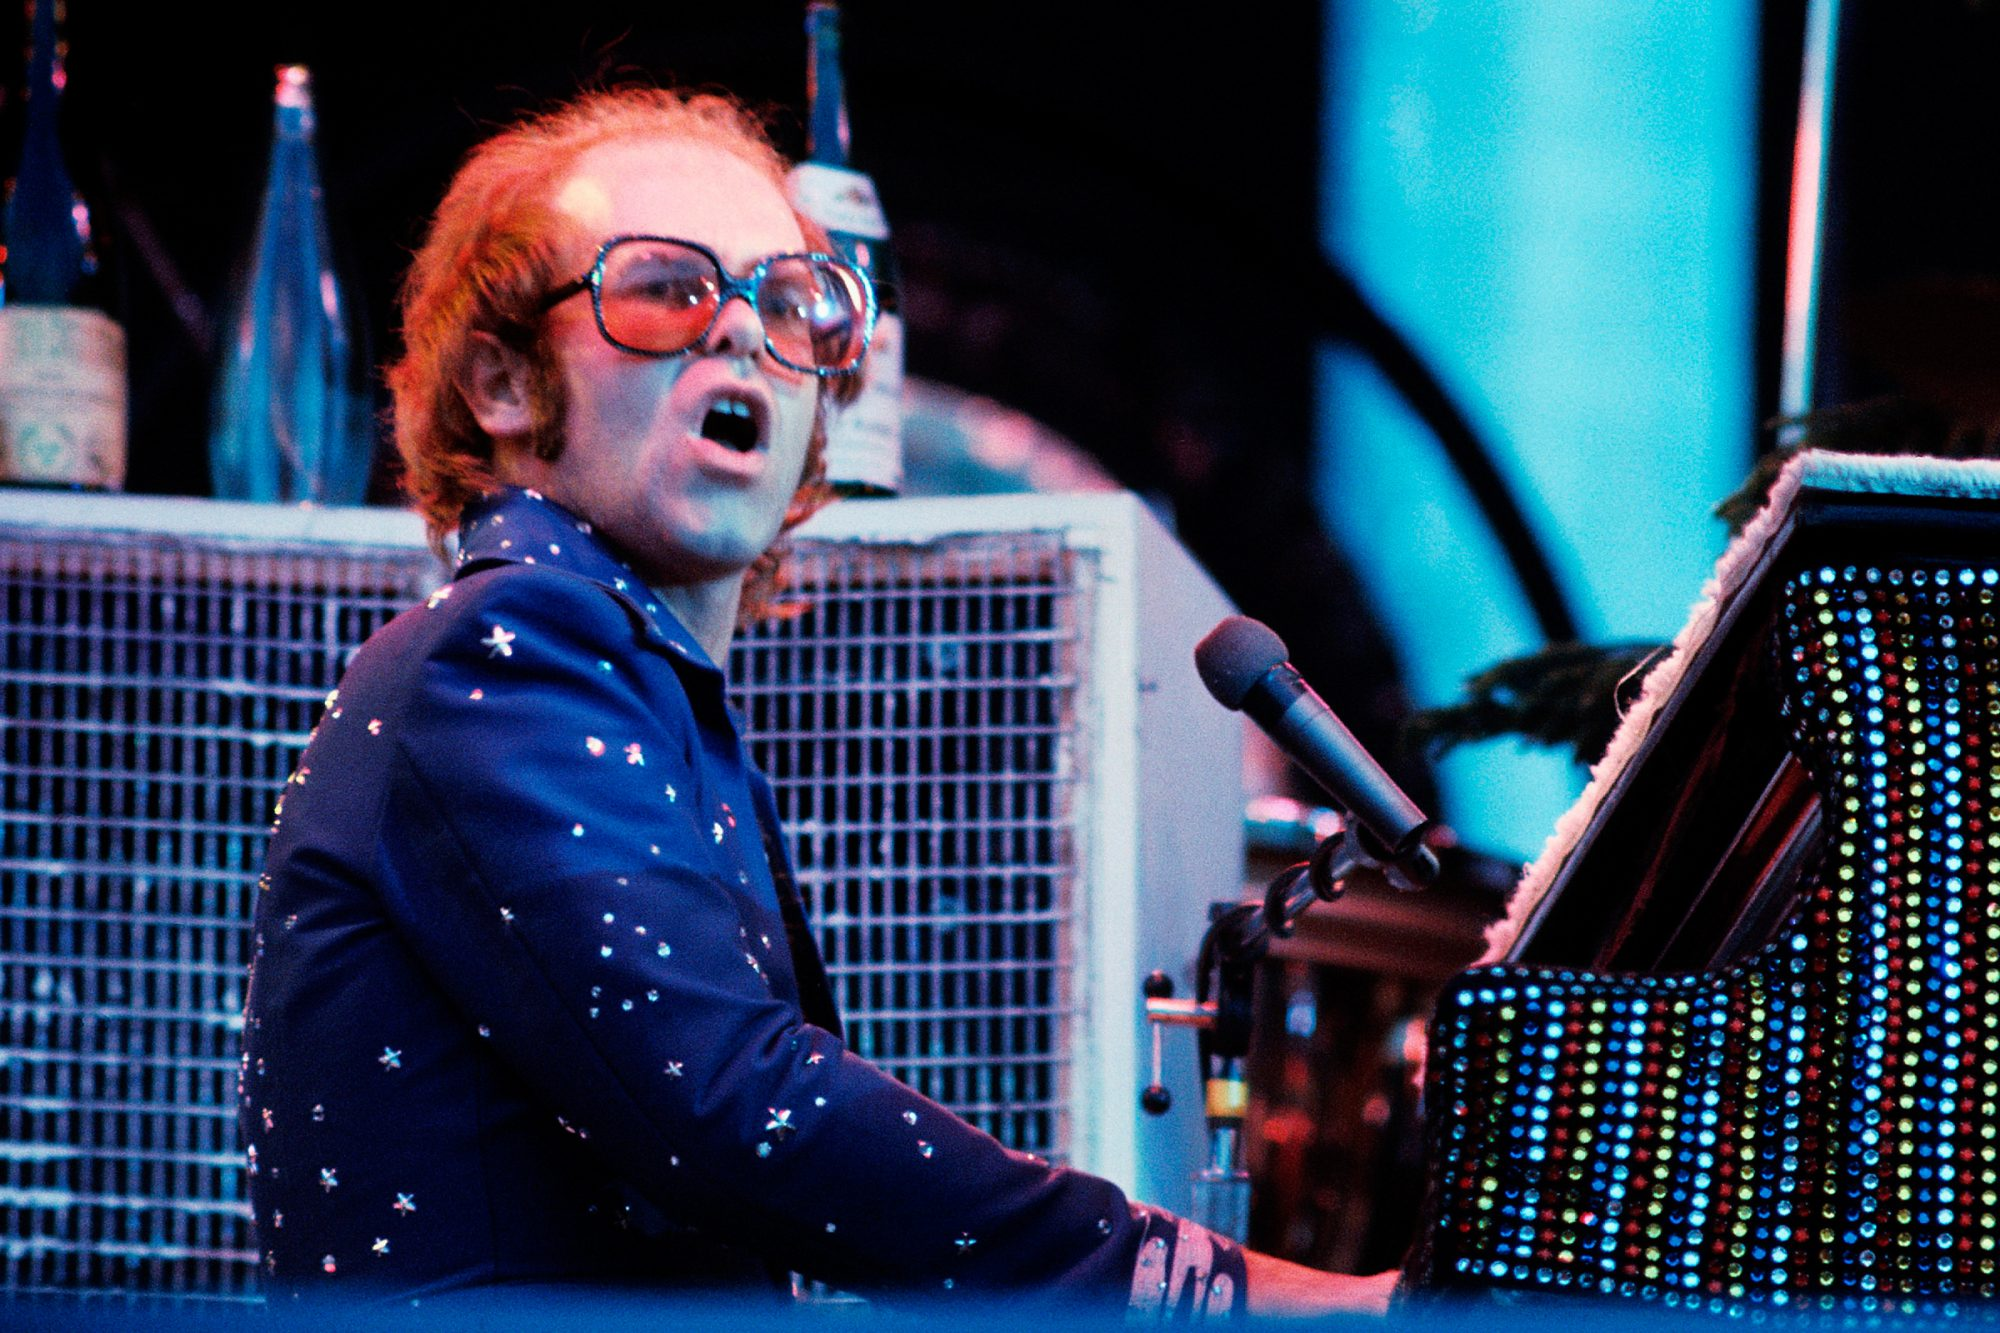 Elton John performs in concert at Wembley in 1976 in London, England